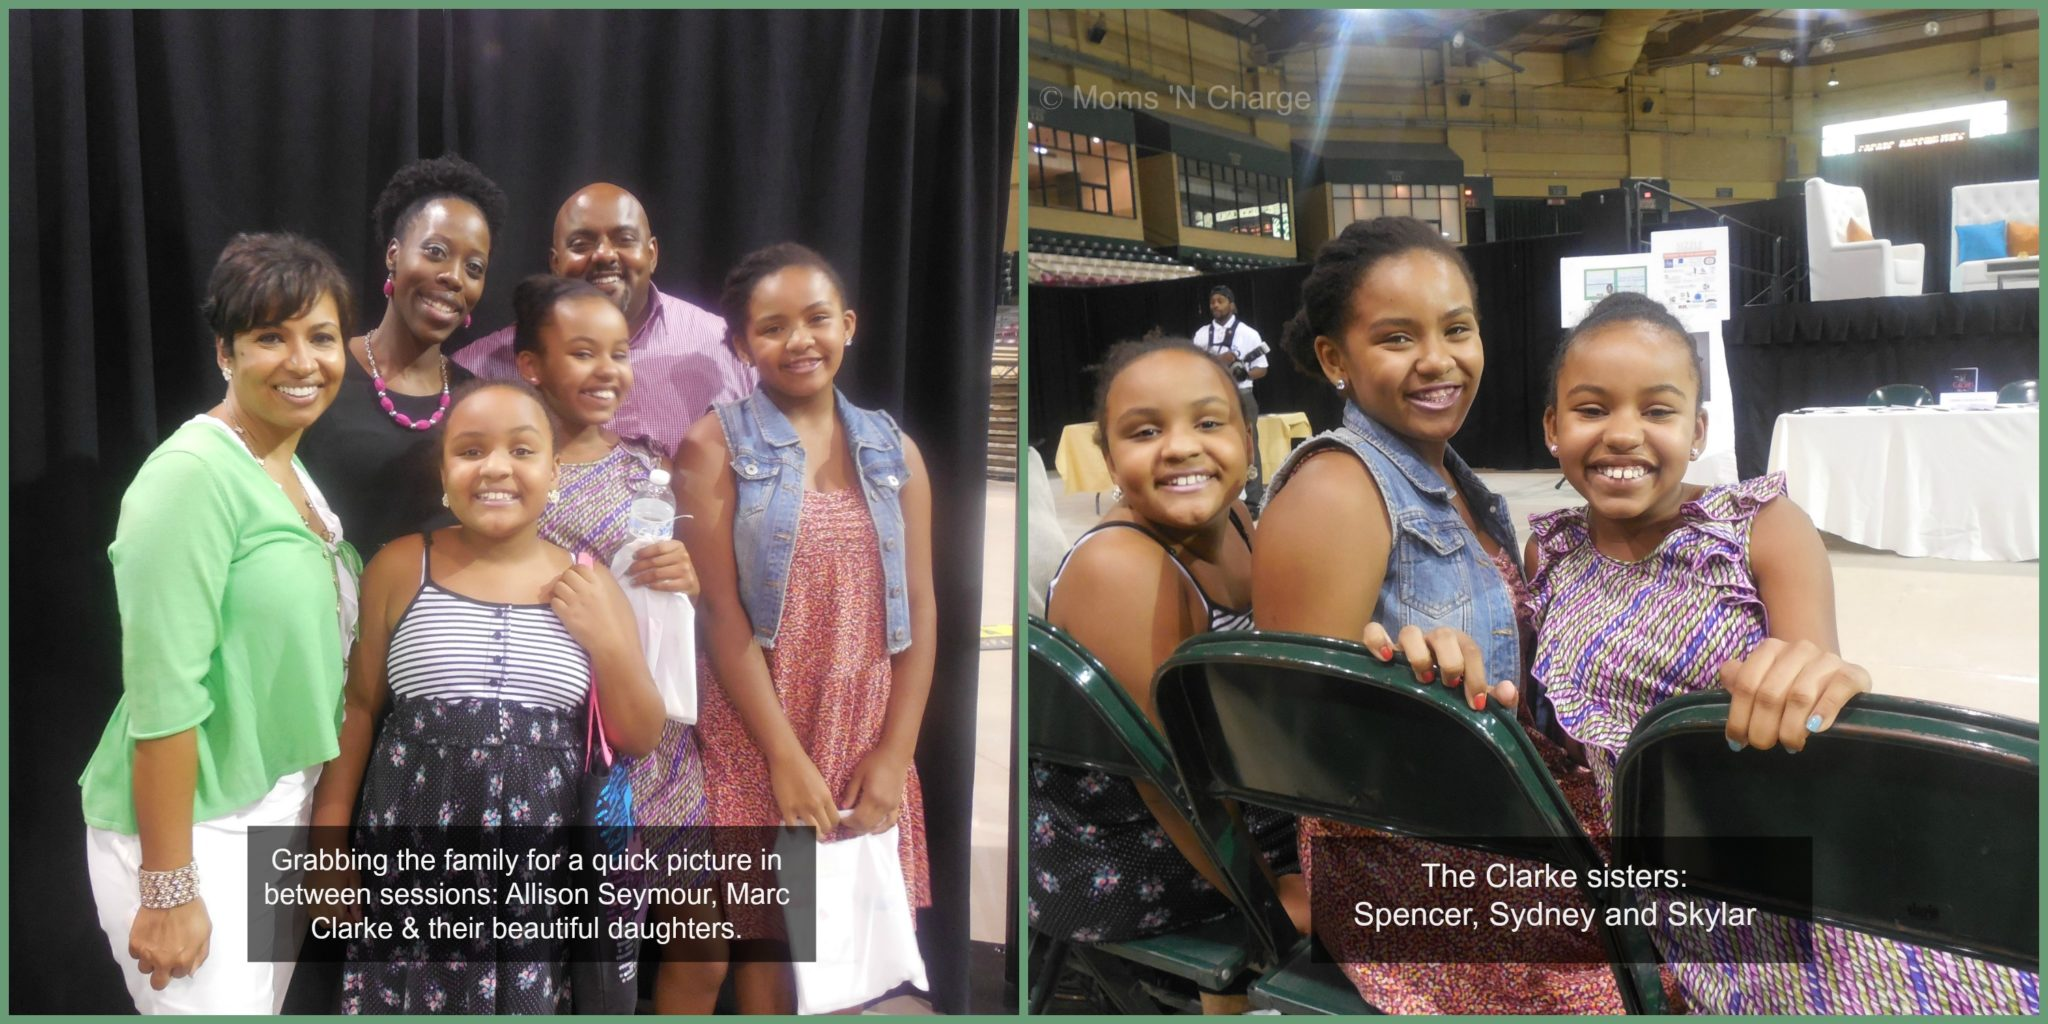 create your own sizzle recap highlights moms n charge reg  marc clarke and allison seymour family